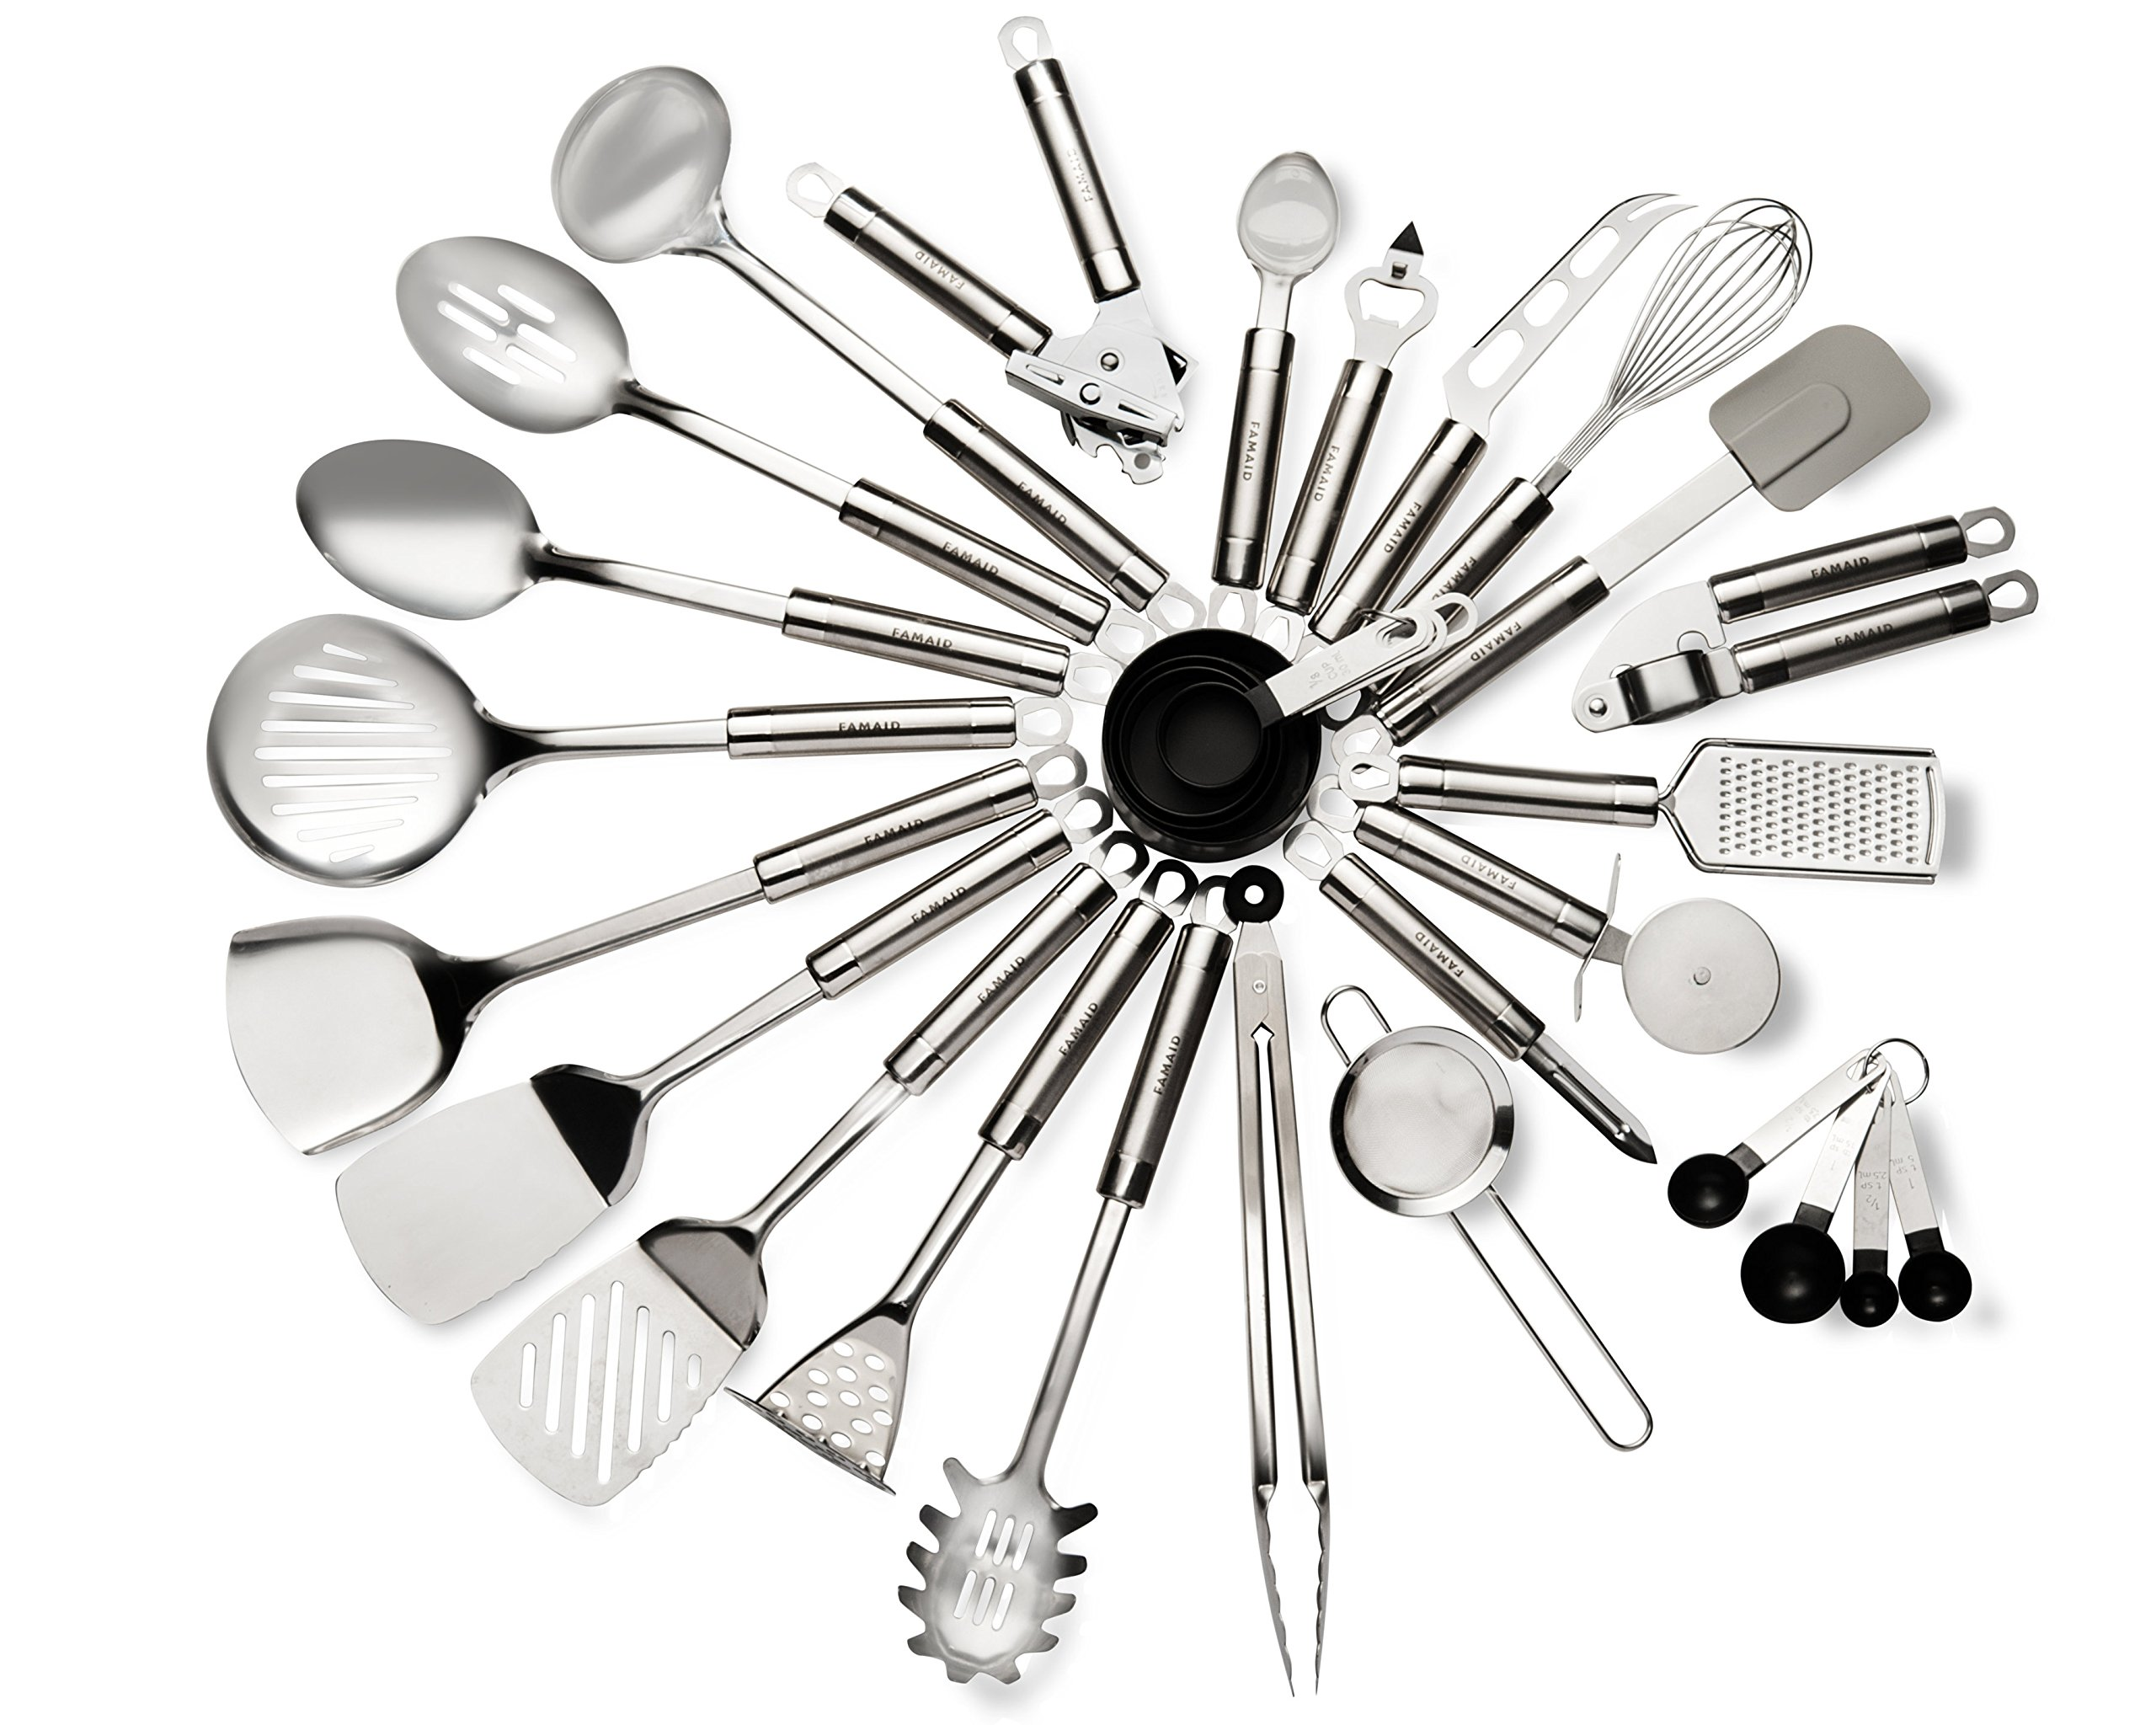 Stainless Steel Kitchen Utensil Set - 29 Cooking Utensils - Durable, Non Stick Cting, Ergonomic Handle & Dishwasher Safe Cookware - Heat Resistant - Handles For Superior Grip - Great Gift Idea by Famaid